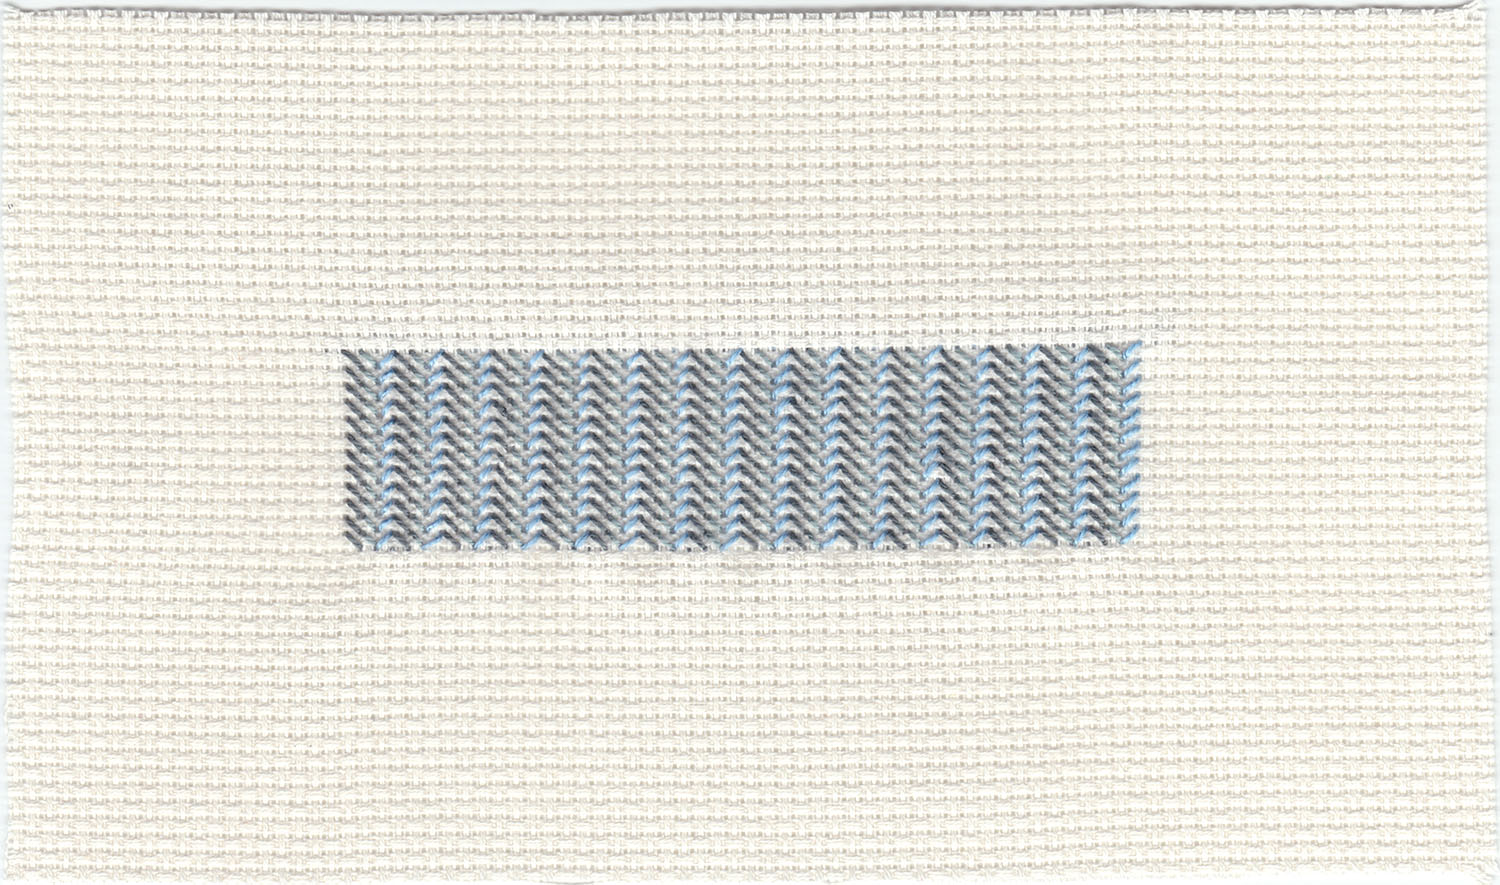 Colour Study in 576 Diagonal Stitches_2A_web.jpg